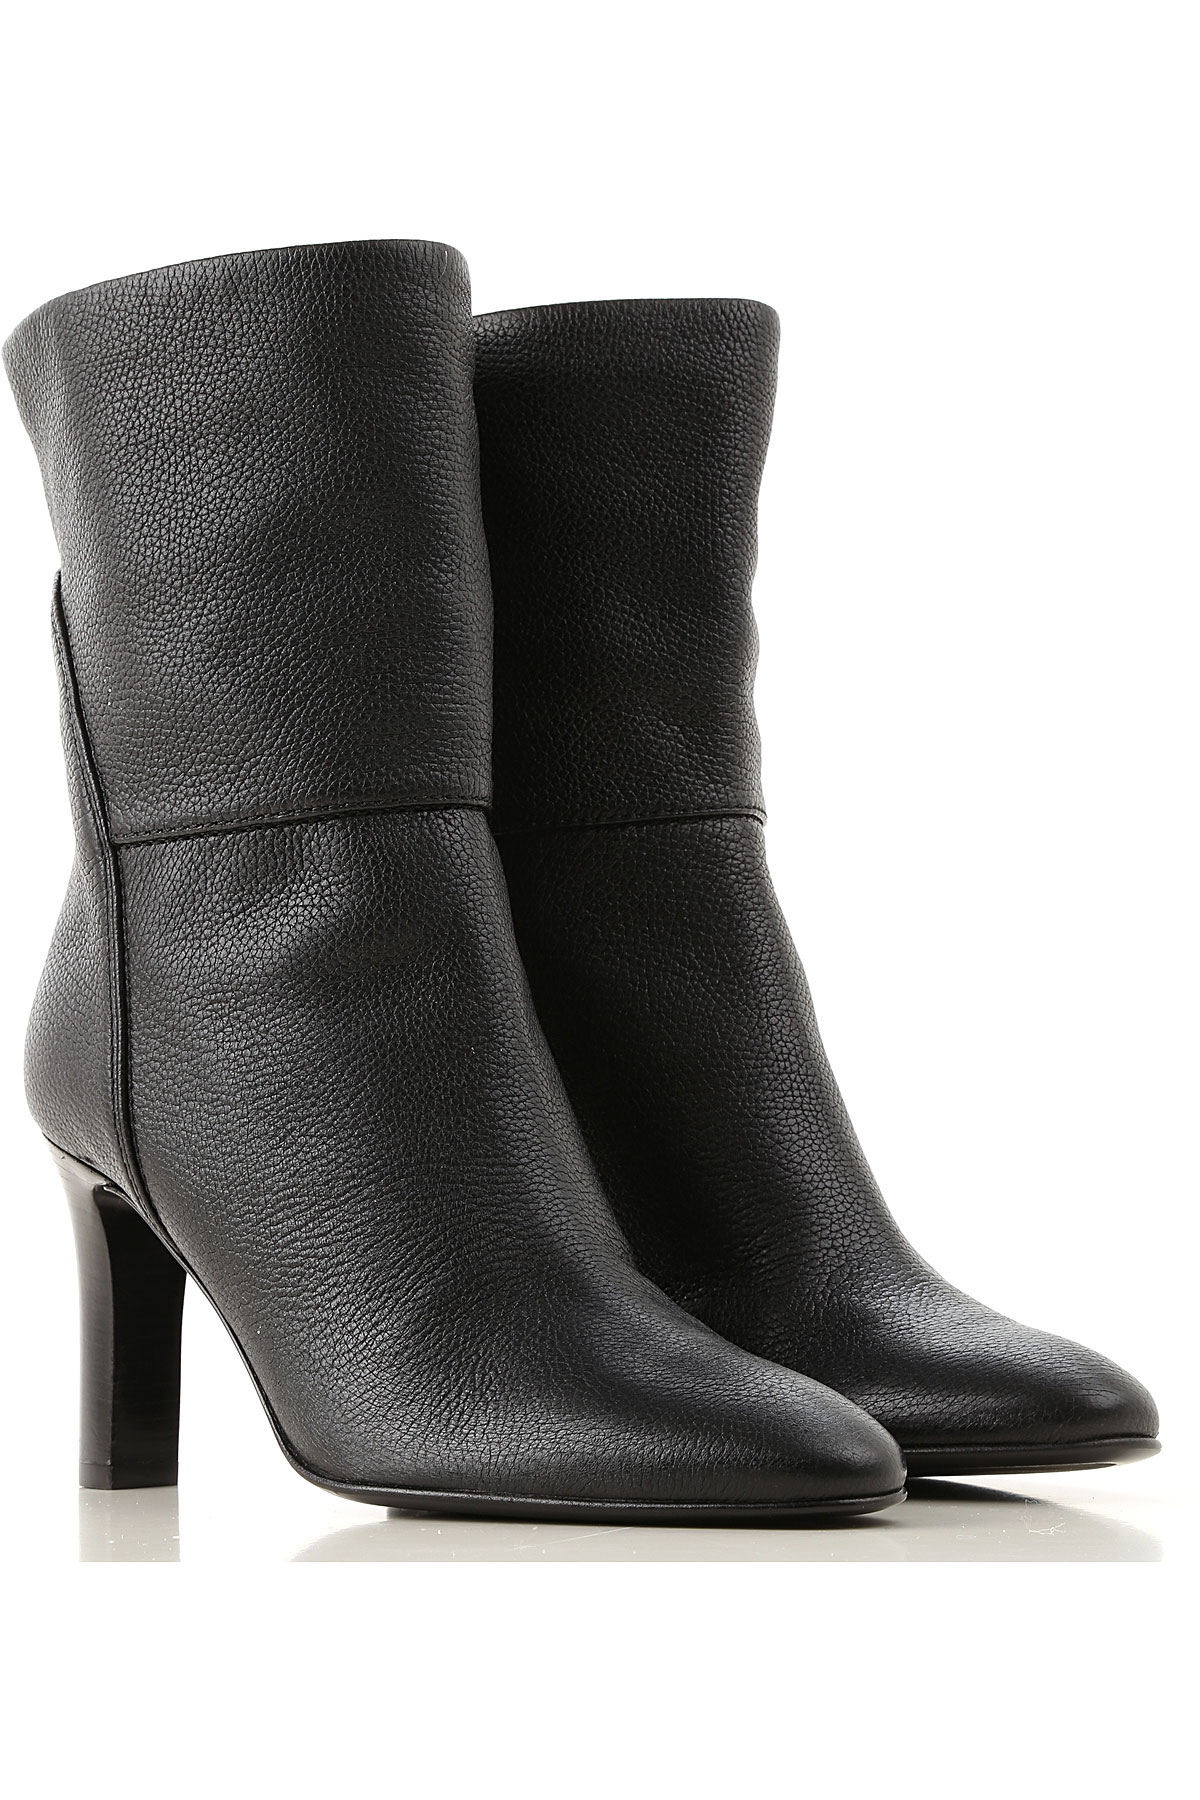 Giuseppe Zanotti Design Boots for Women, Booties On Sale, Black, Leather, 2019, 10 11 6 6.5 7 8 8.5 9 9.5